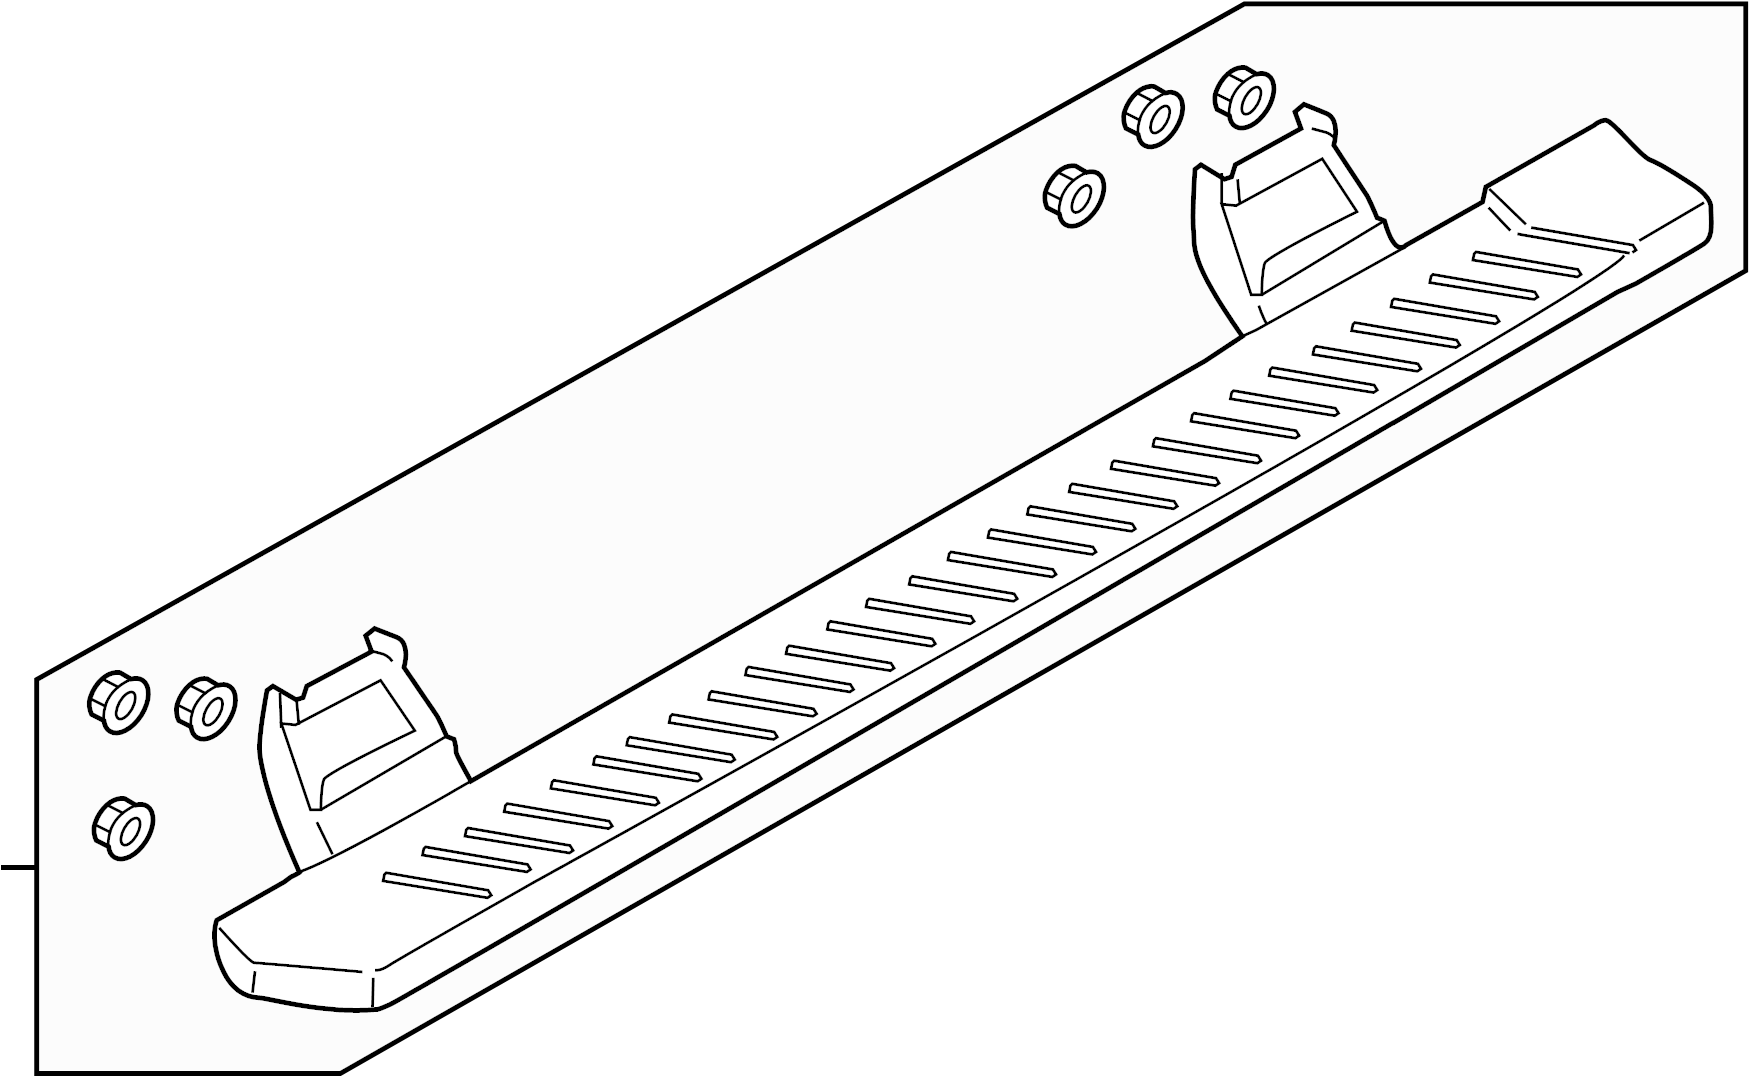 Ford F 150 Running Board Step Assembly Part Includes Right And Left Running Board